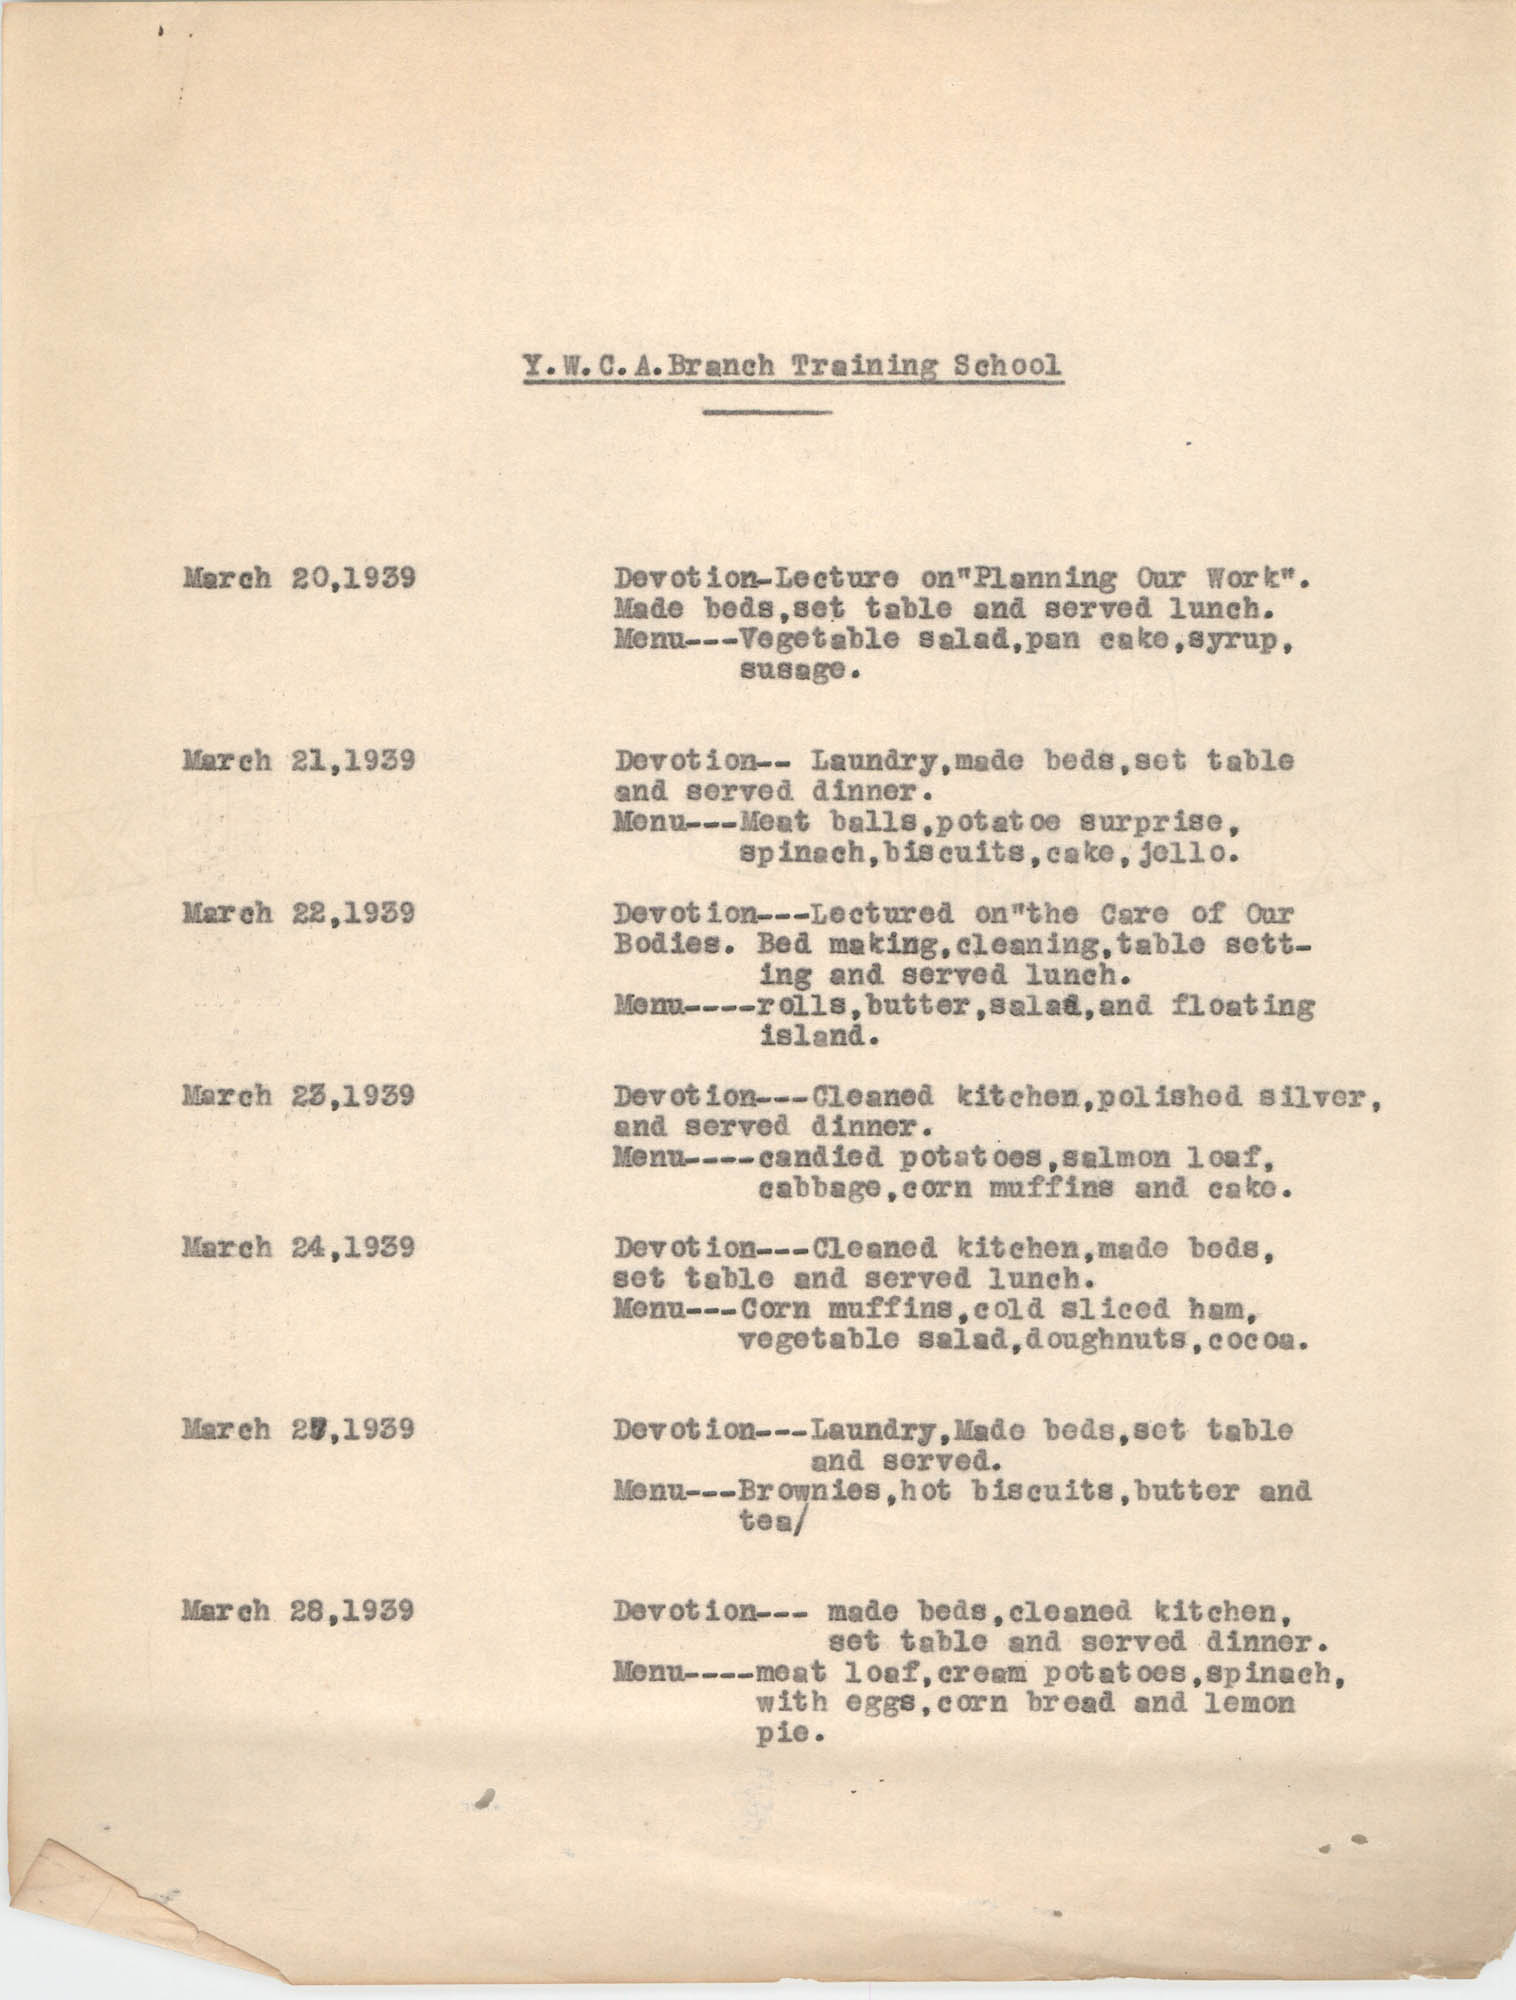 Monthly Report for the Coming Street Y.W.C.A., March 1939, Branch Training School, Page 1